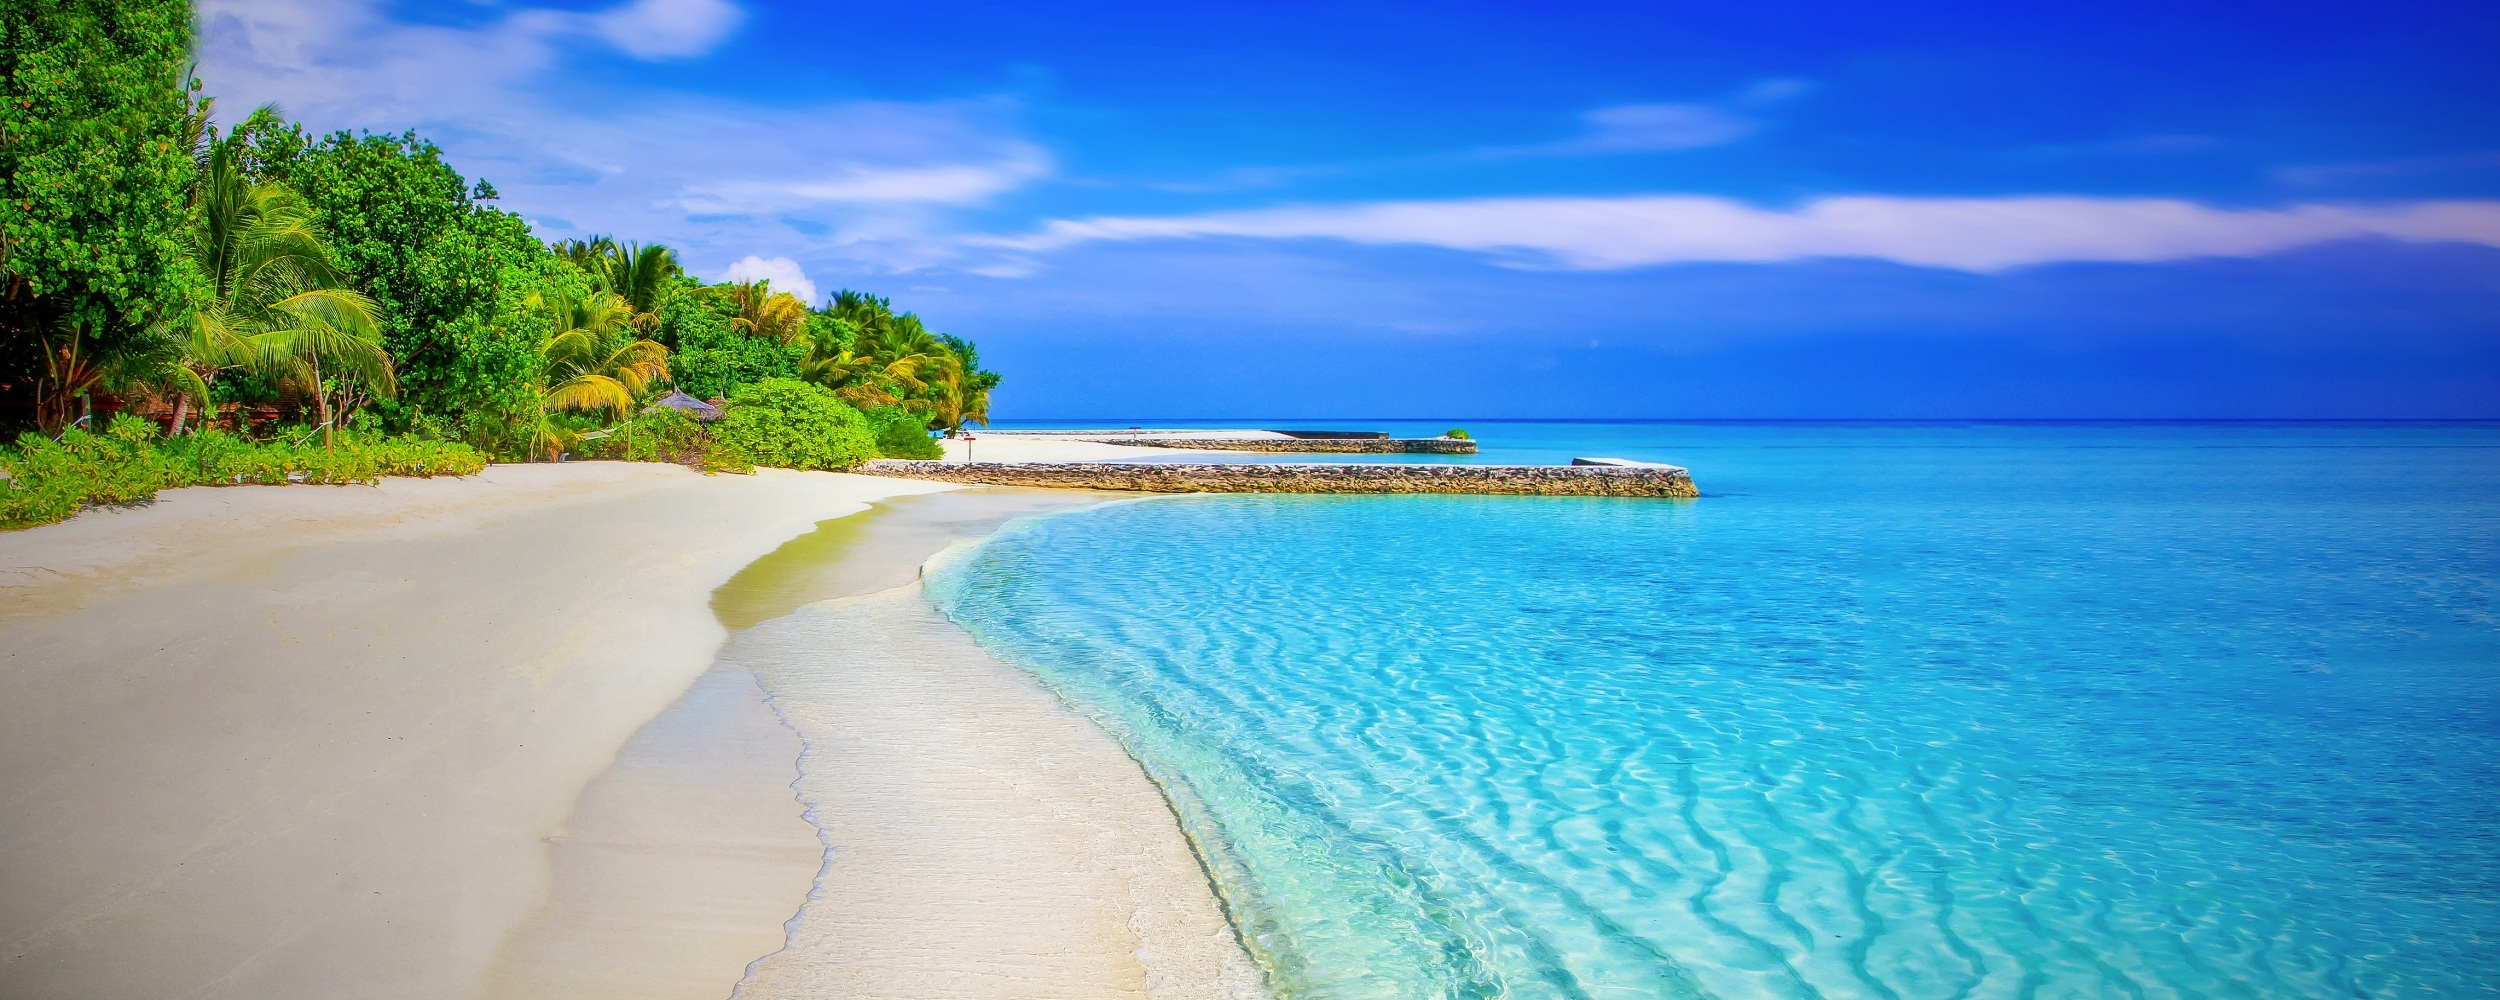 beach-sea-coast-water-sand-ocean-horizon-sun-shore-vacation-sunbathing-paradise-holiday-lagoon-bay-island-body-of-water-white-sand-caribbean-sandy-beach-palm-trees-tropics-paradise-beach-bathing-islet-exotica-azure-water-azure-sea-1271153